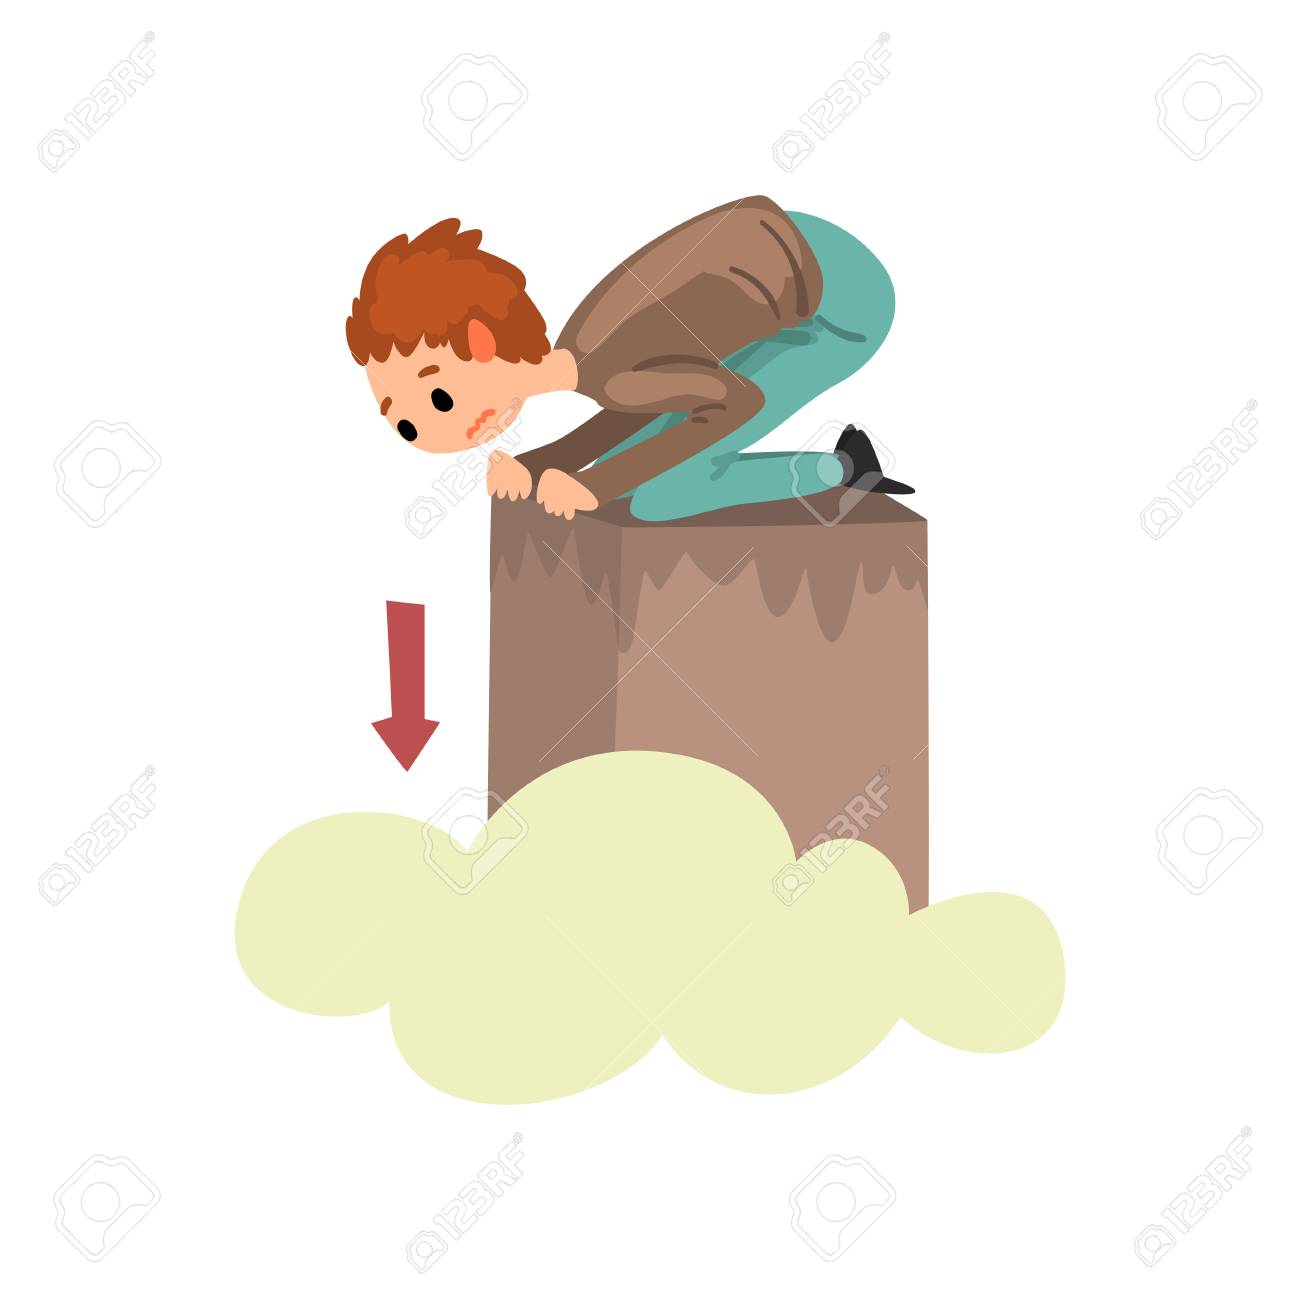 Man suffering from acrophobia, guy feeling fear of heights, human fear concept vector Illustration isolated on a white background. - 111720240